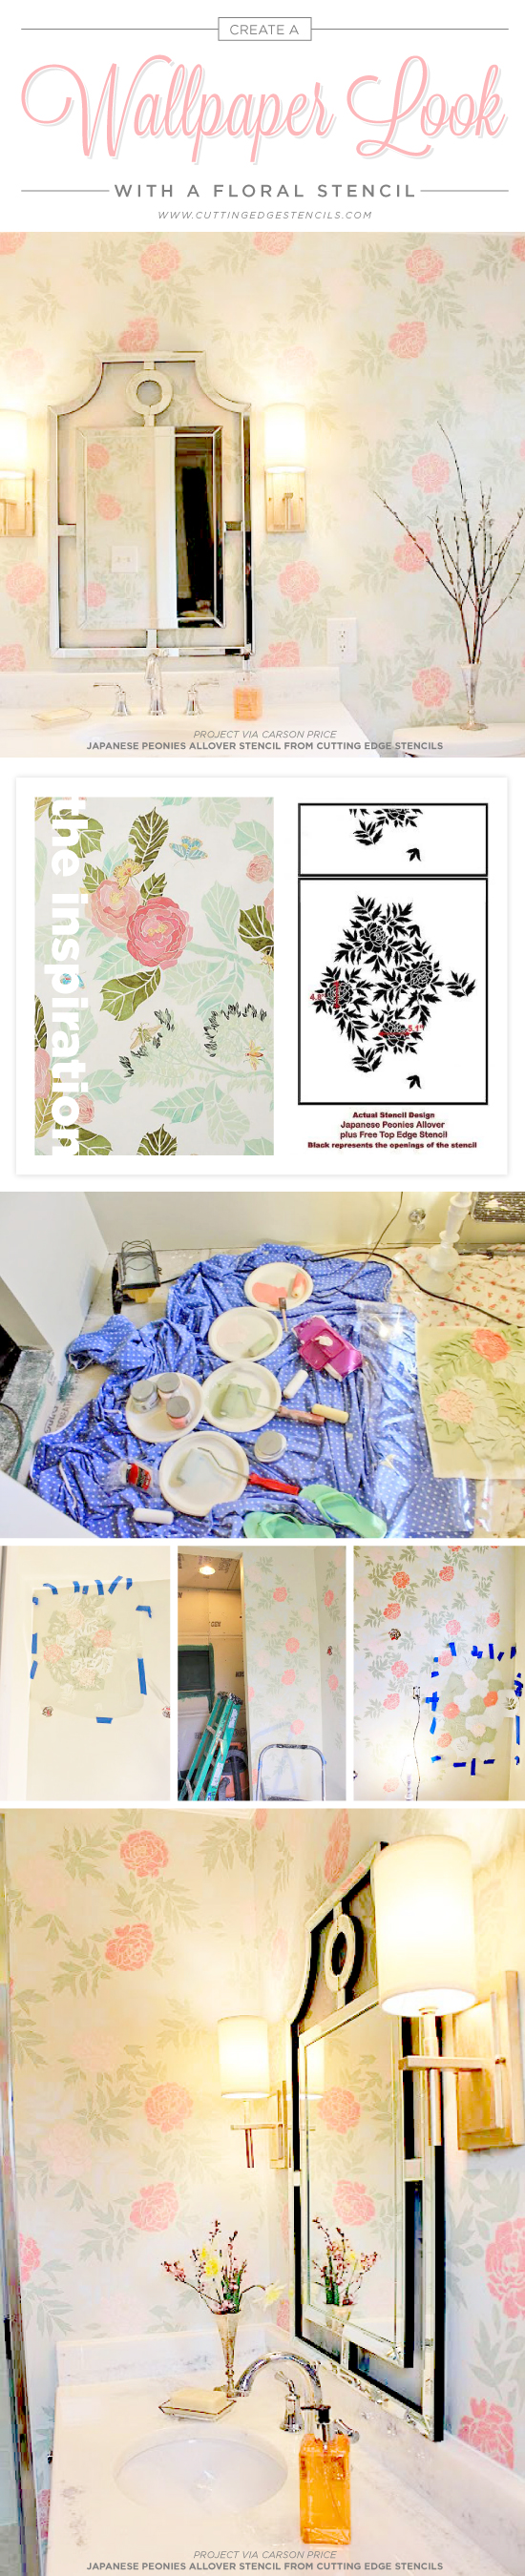 Cutting Edge Stencils shares a DIY stenciled bathroom using the Japanese Peonies Allover Stencil for a wallpaper look. http://www.cuttingedgestencils.com/japanese-peonies-floral-stencil-pattern.html